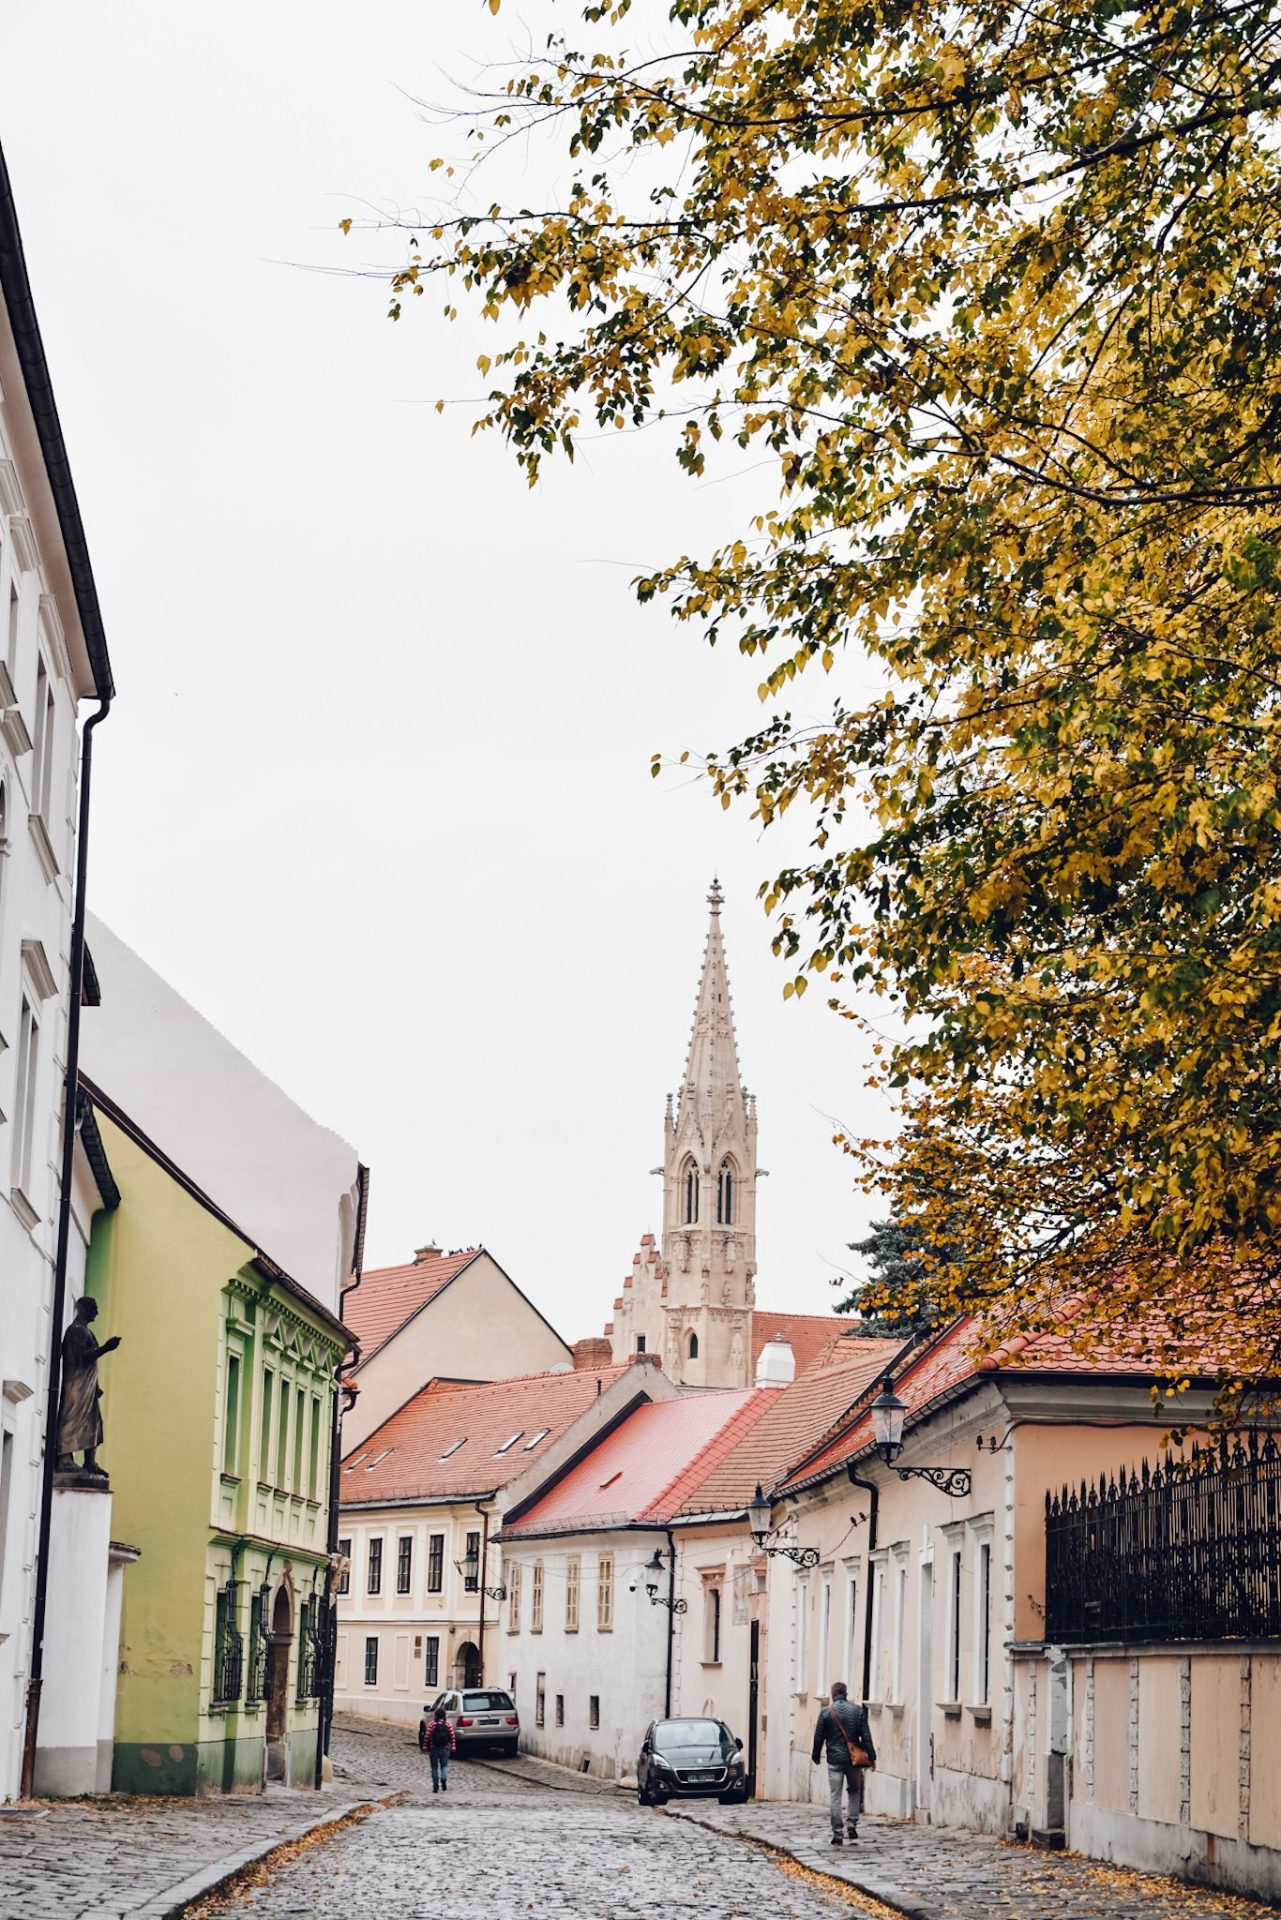 Wander the Old Town of Bratislava